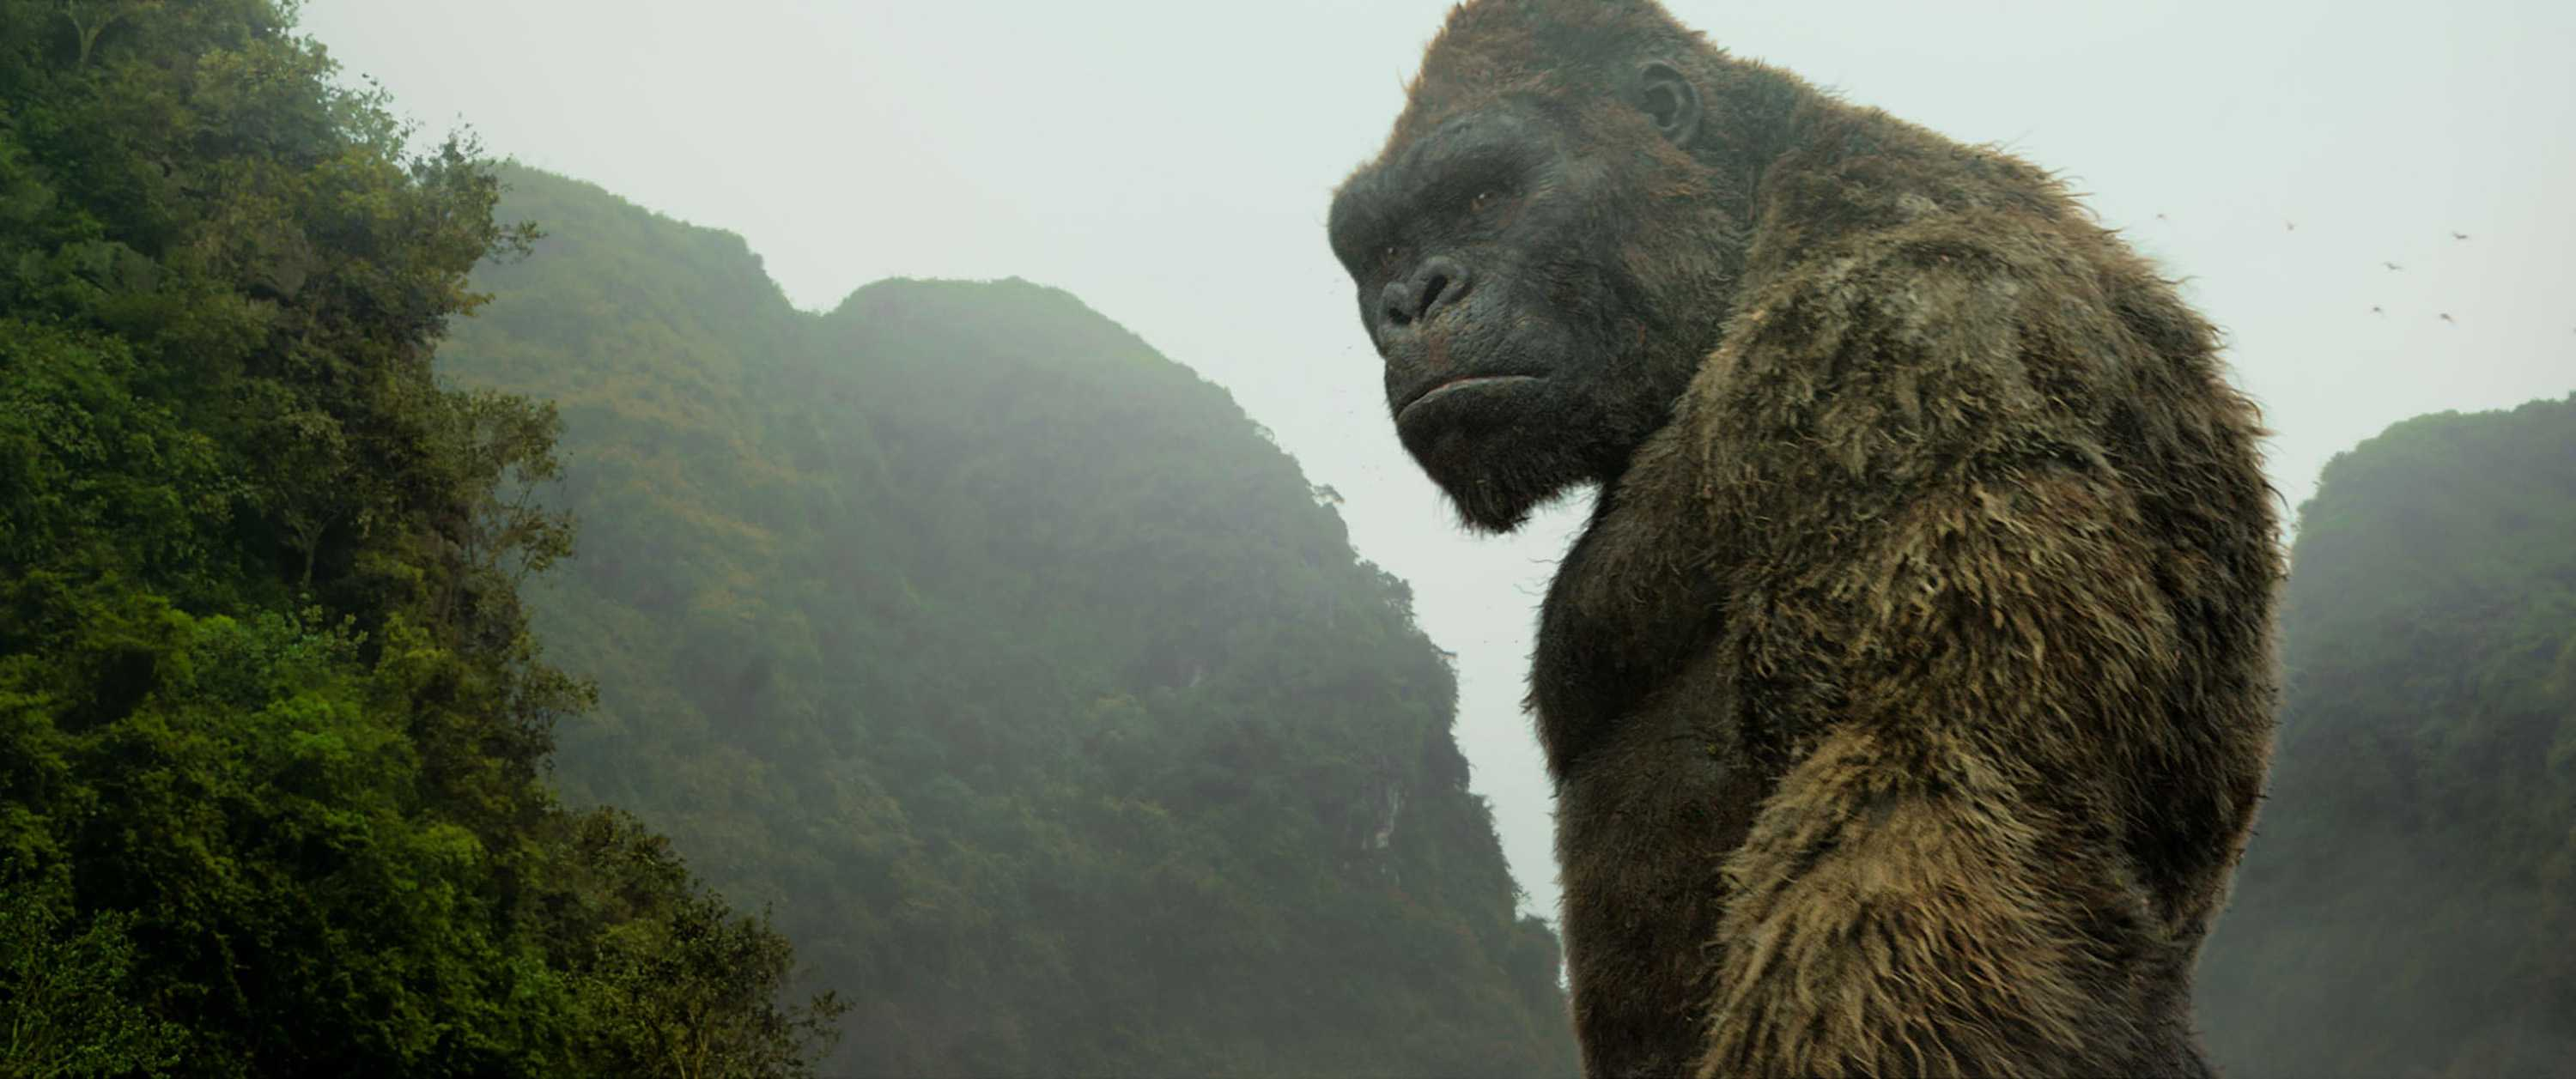 Kong in the film